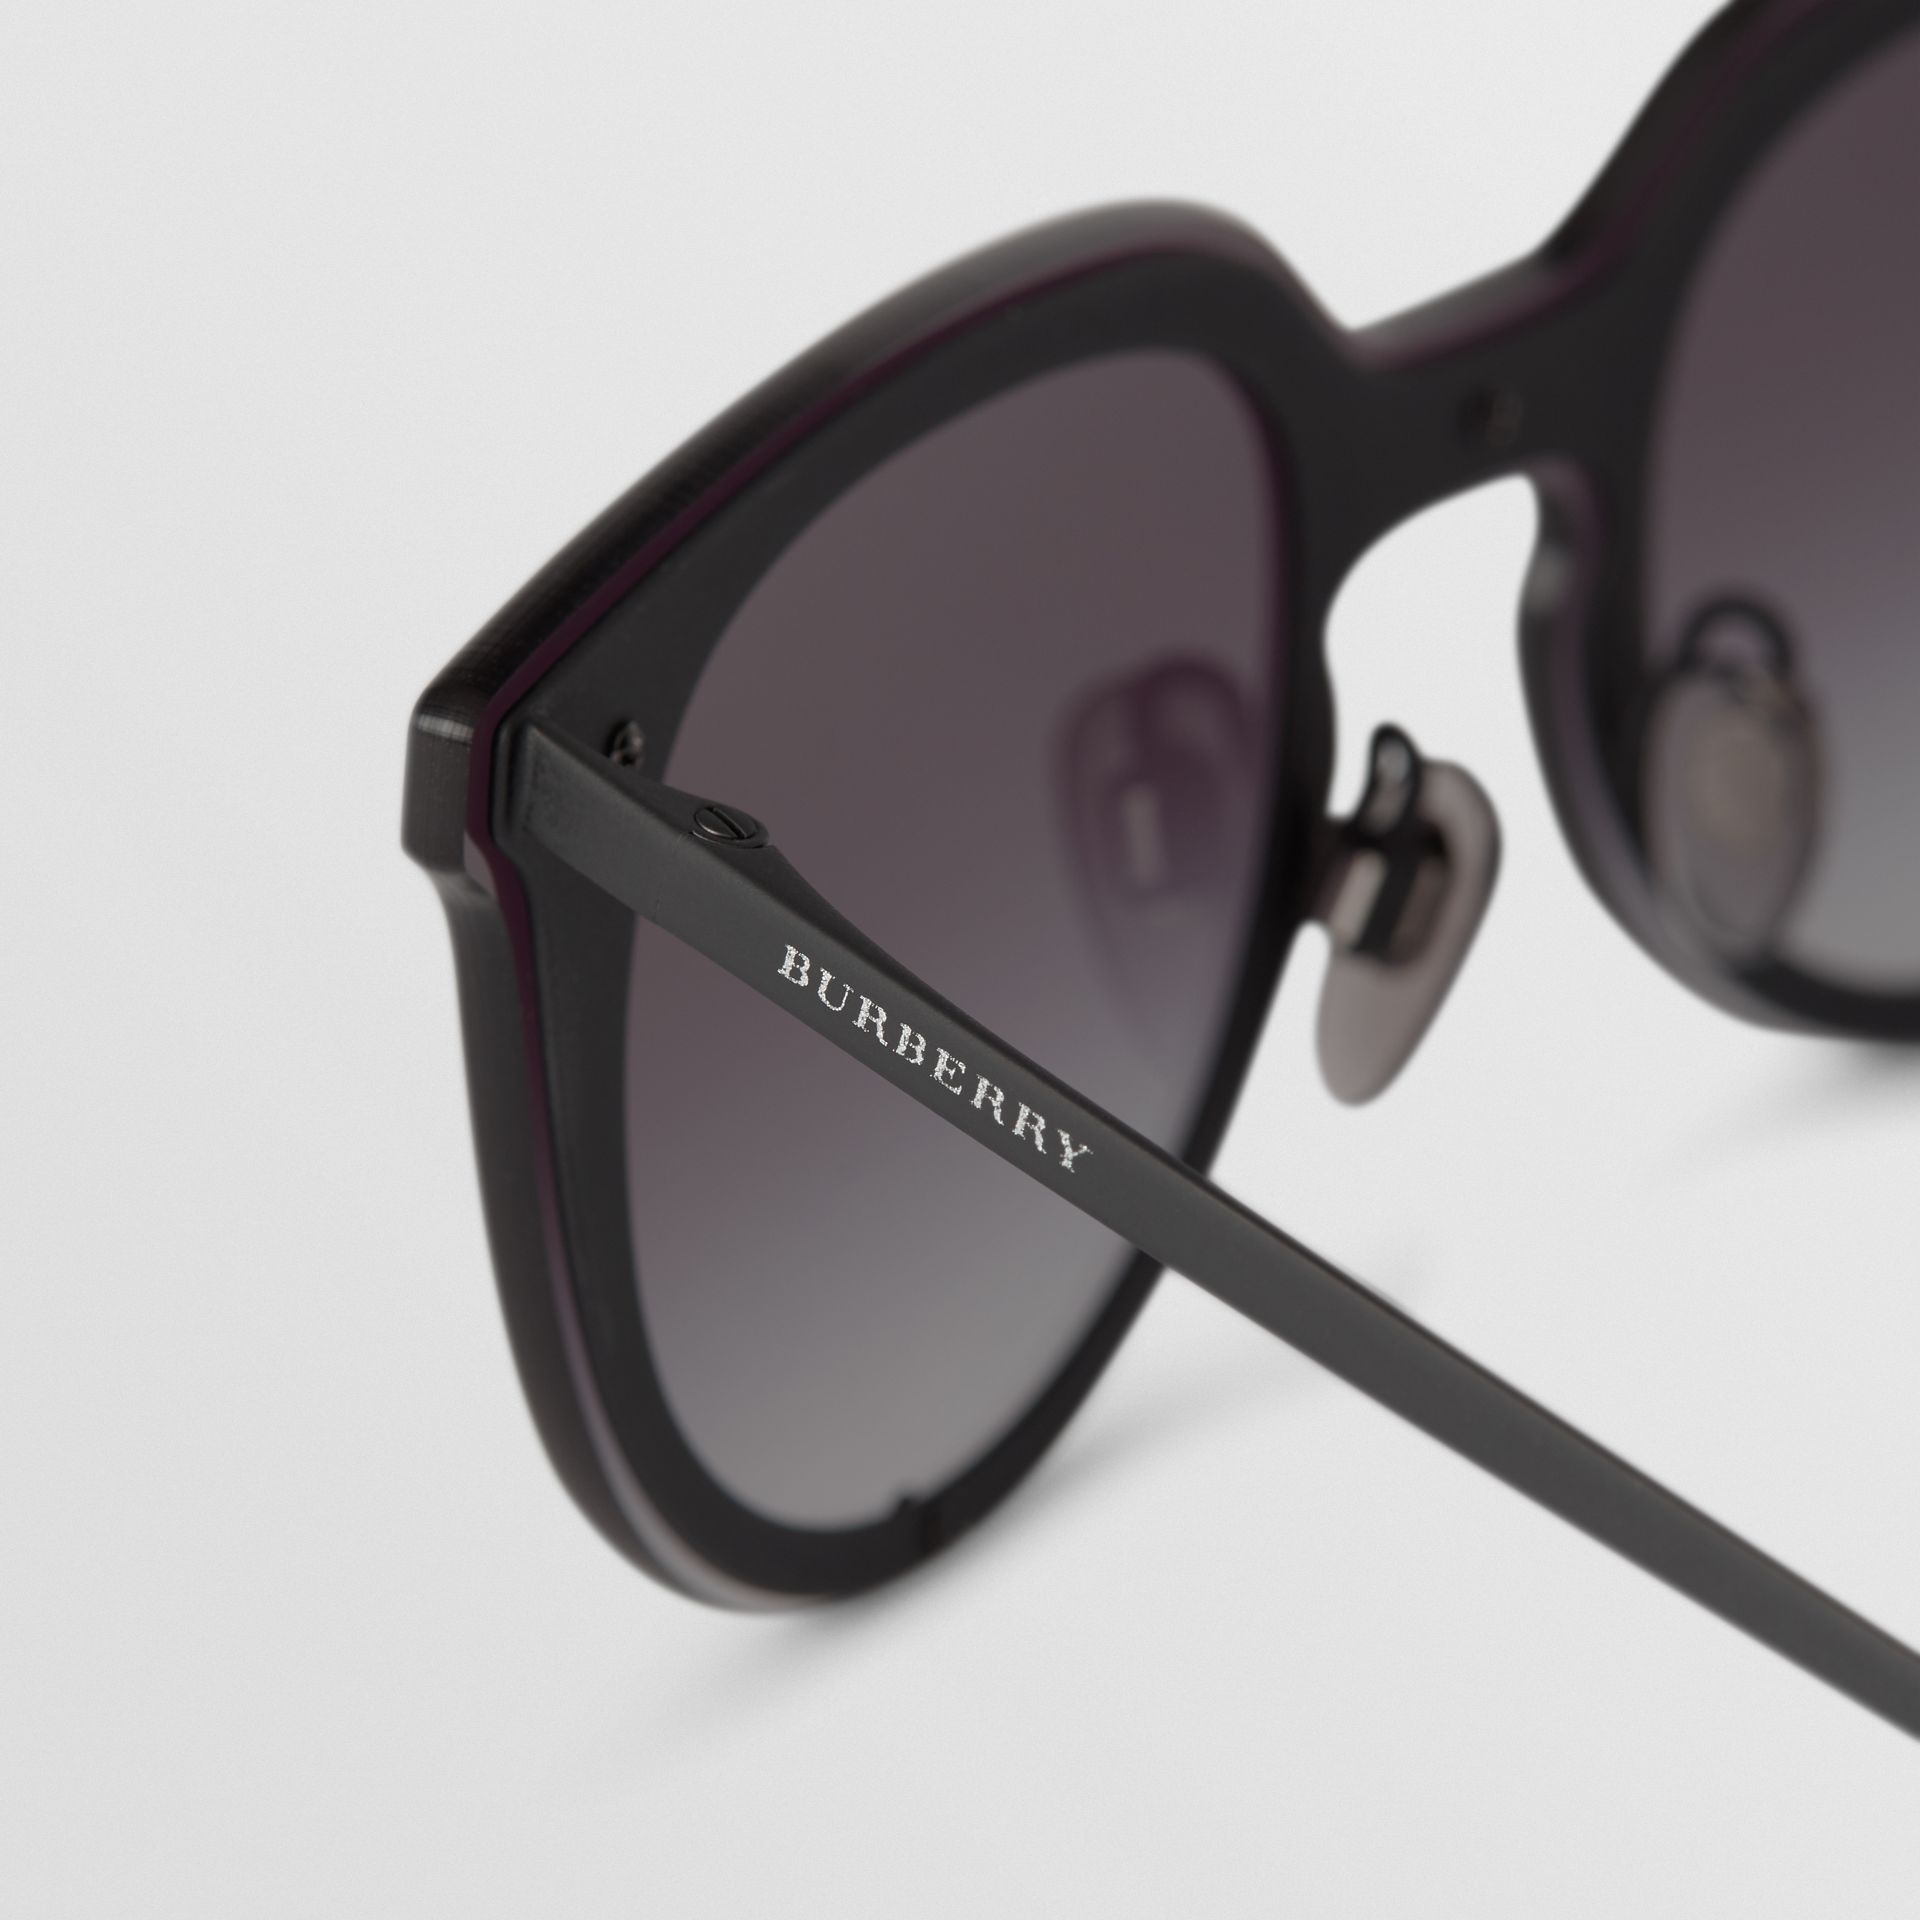 Keyhole Round Frame Shield Sunglasses in Black - Women | Burberry - gallery image 1